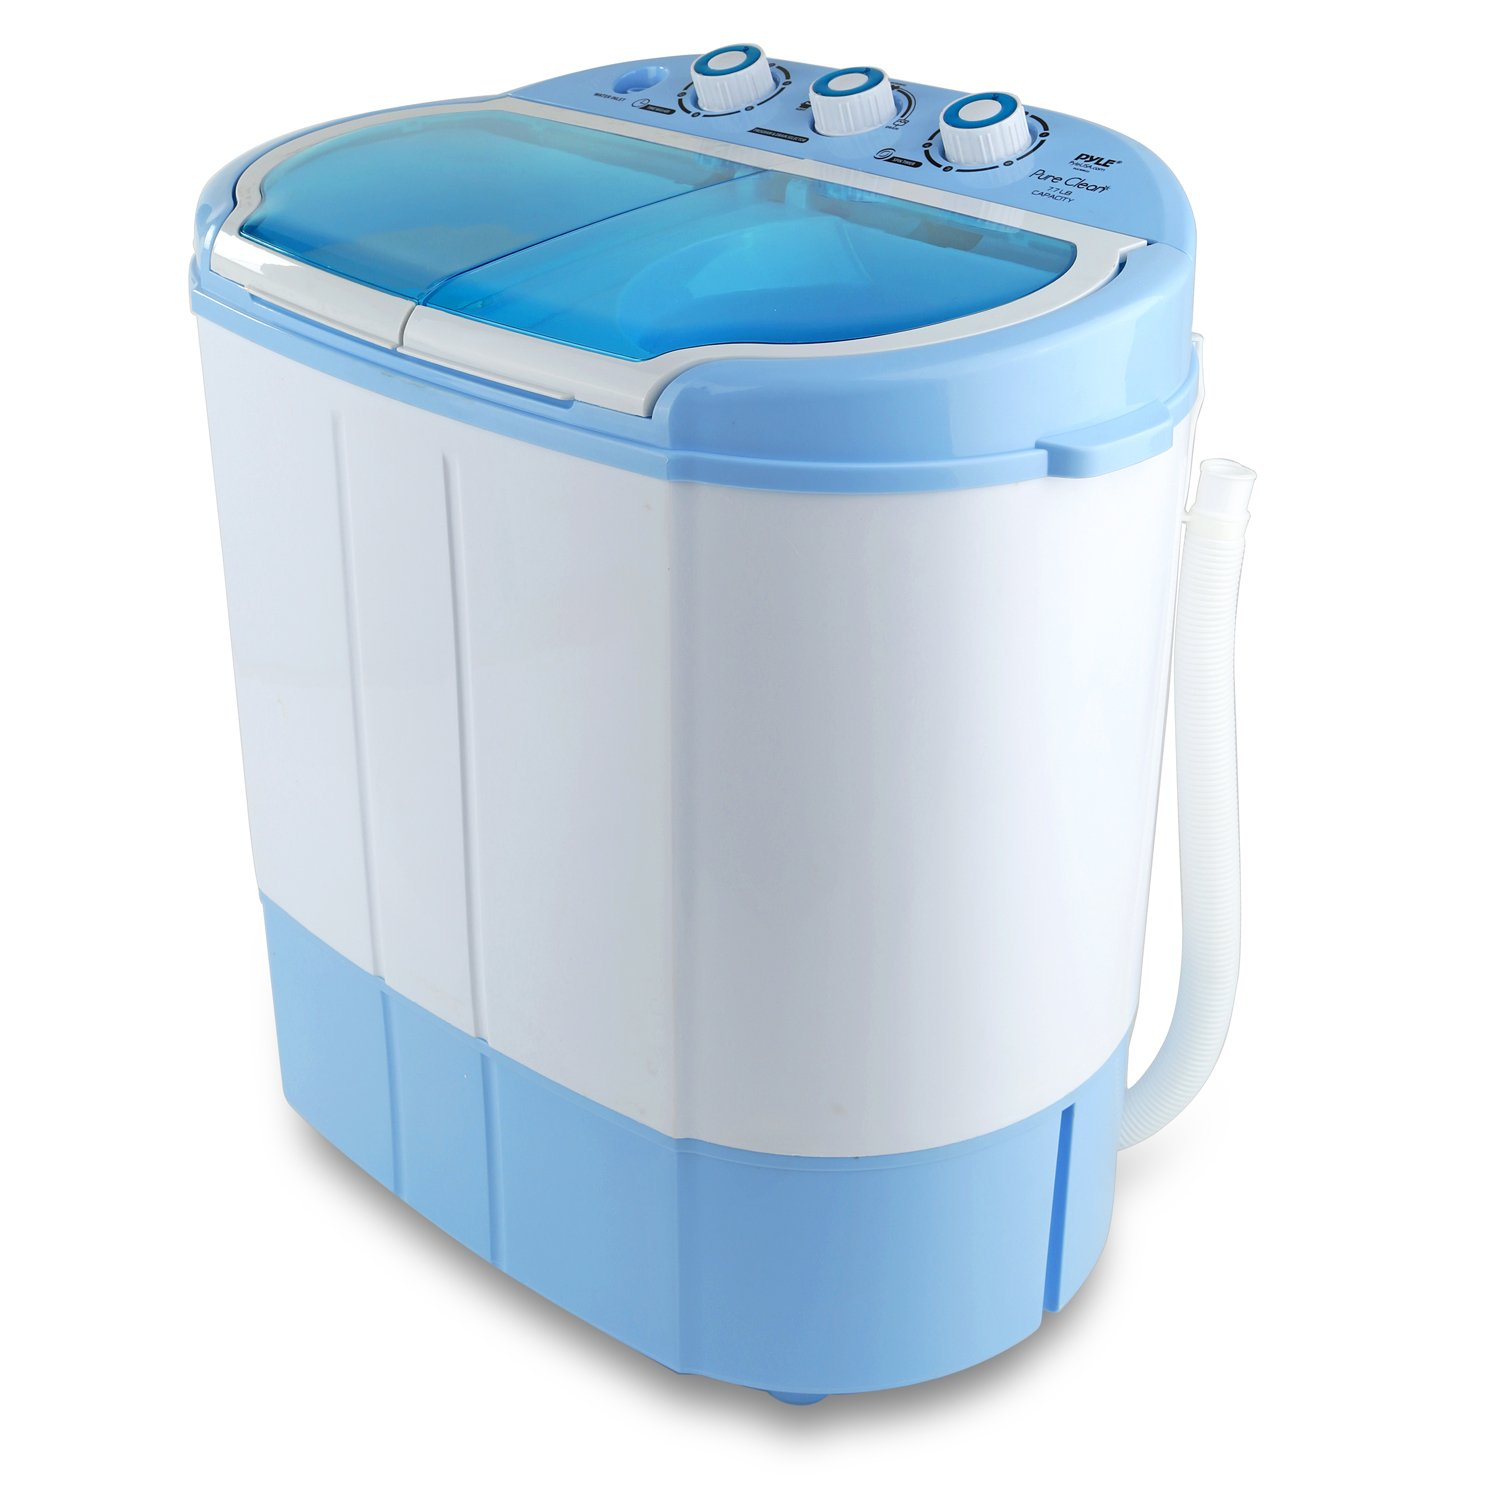 Upgraded Version Pyle Portable Washer & Spin Dryer, Mini Washing Machine, Twin Tubs, Spin Cycle w/ Hose, 11lbs. Capacity, 110V - Ideal For Compact Laundry by Pyle